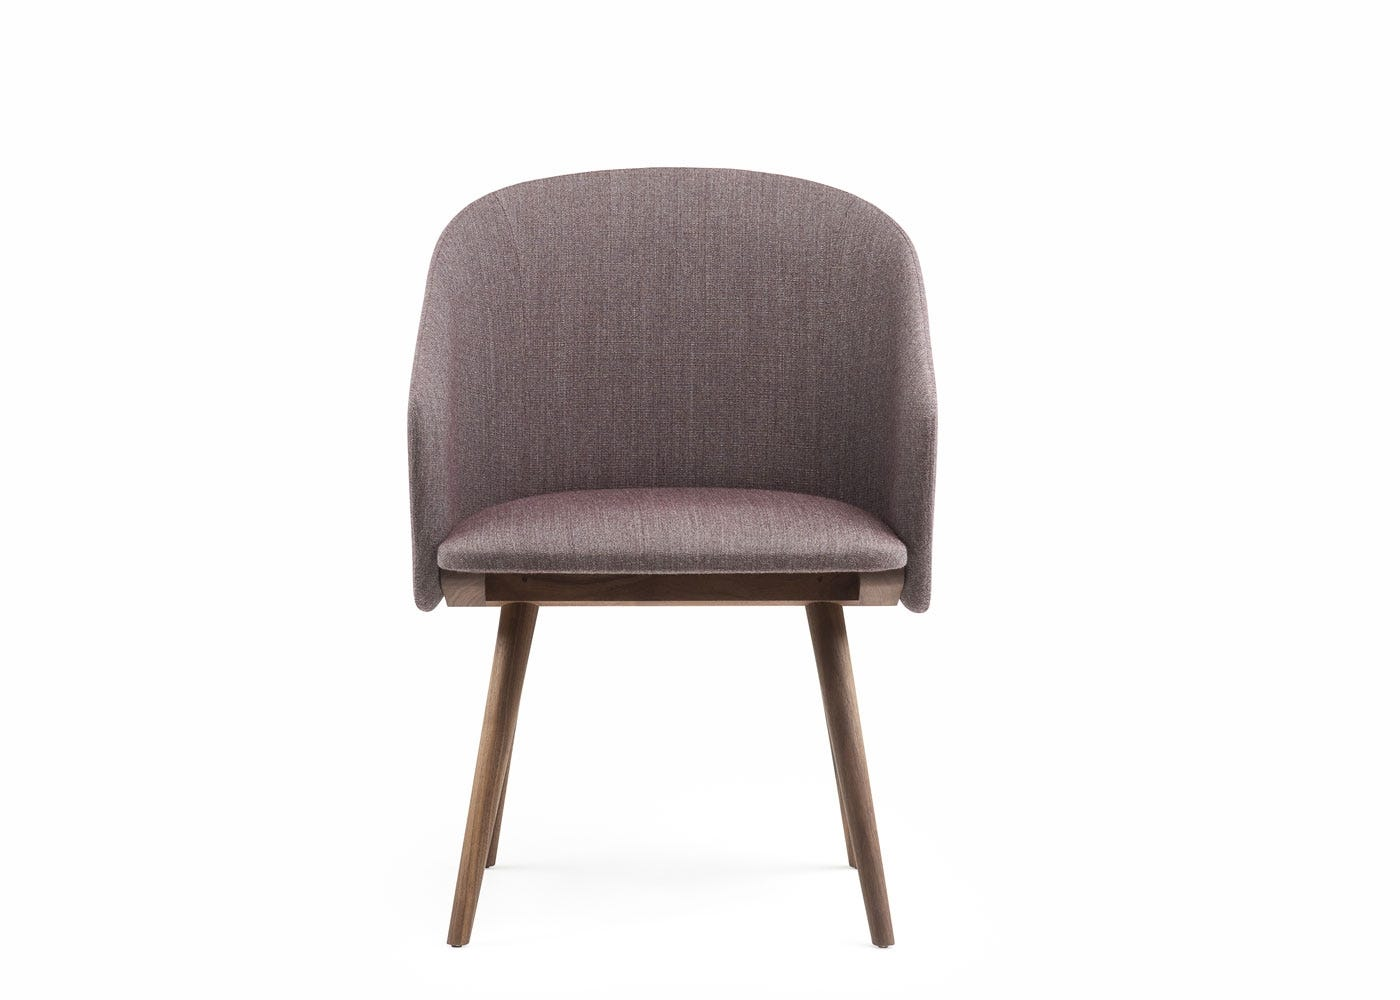 Saia dining chair upholstered in red foss - front view.